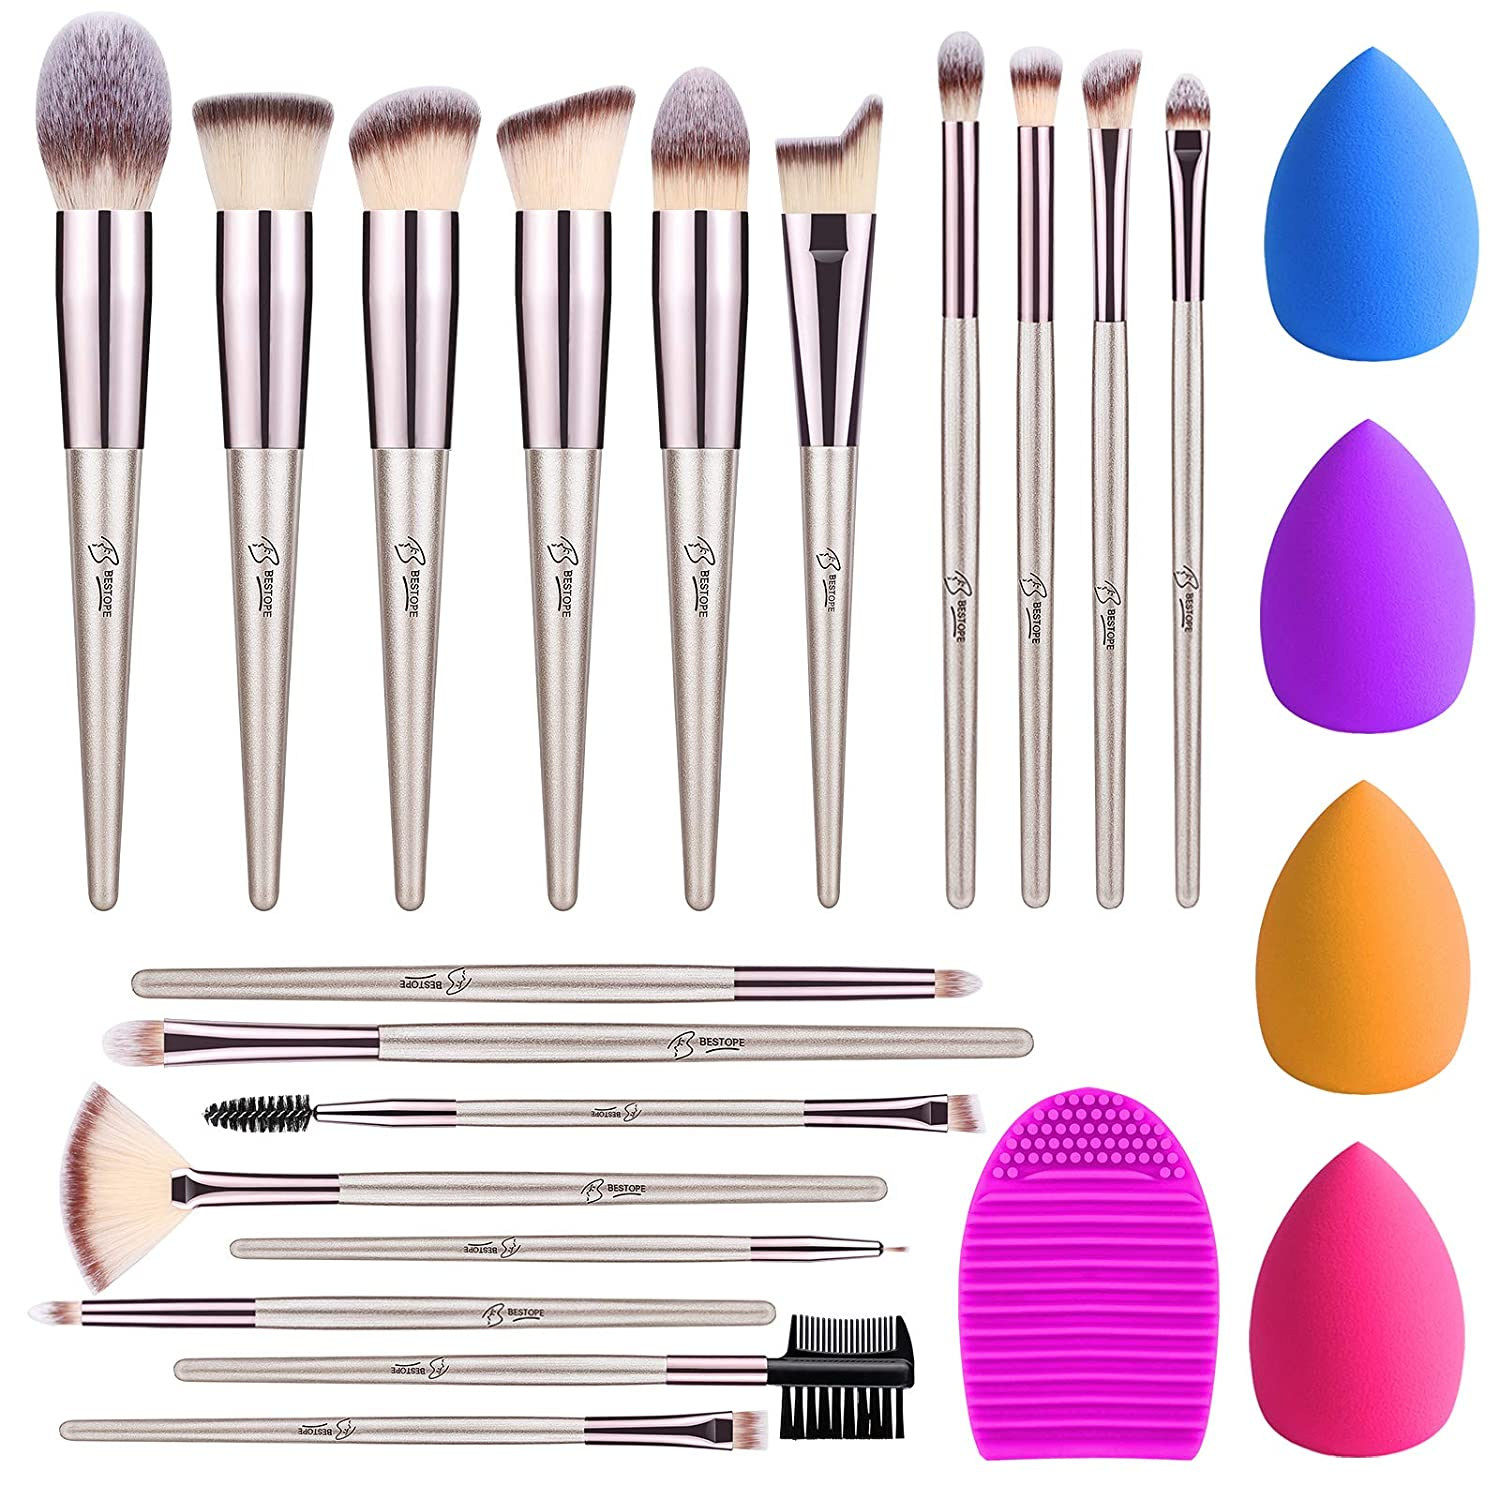 BESTOPE 18Pcs Makeup Brushes Set, 4Pcs makeup Sponge Set and 1 Brush Cleaner, Premium Synthetic Foundation Make Up Brushes Kit Champagne Gold Conical Handle(Champagne Gold)